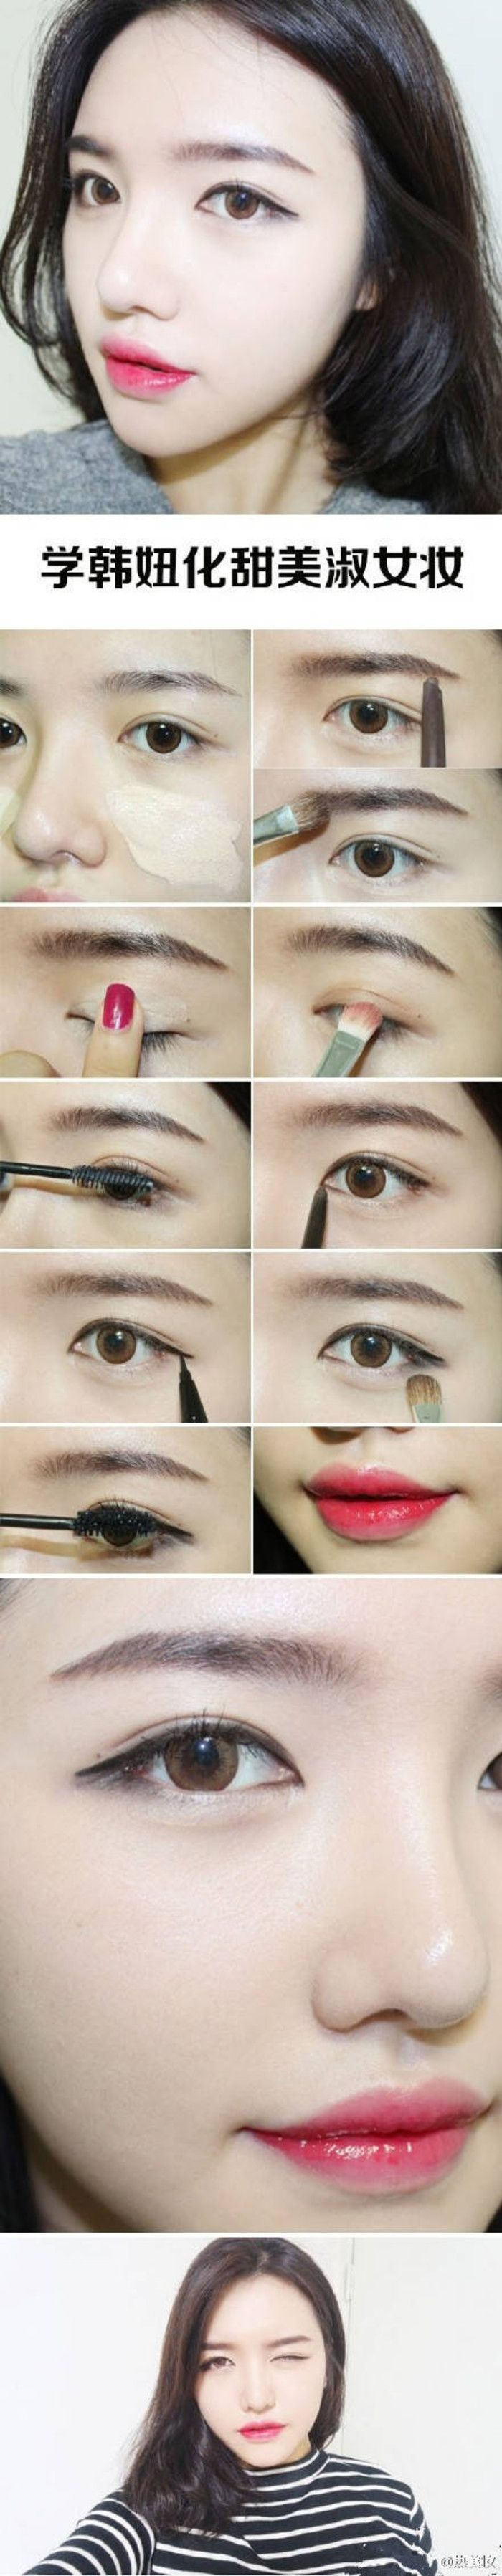 asian make up www.AsianSkincare.Rocks ✨www.SkincareInKorea.info…